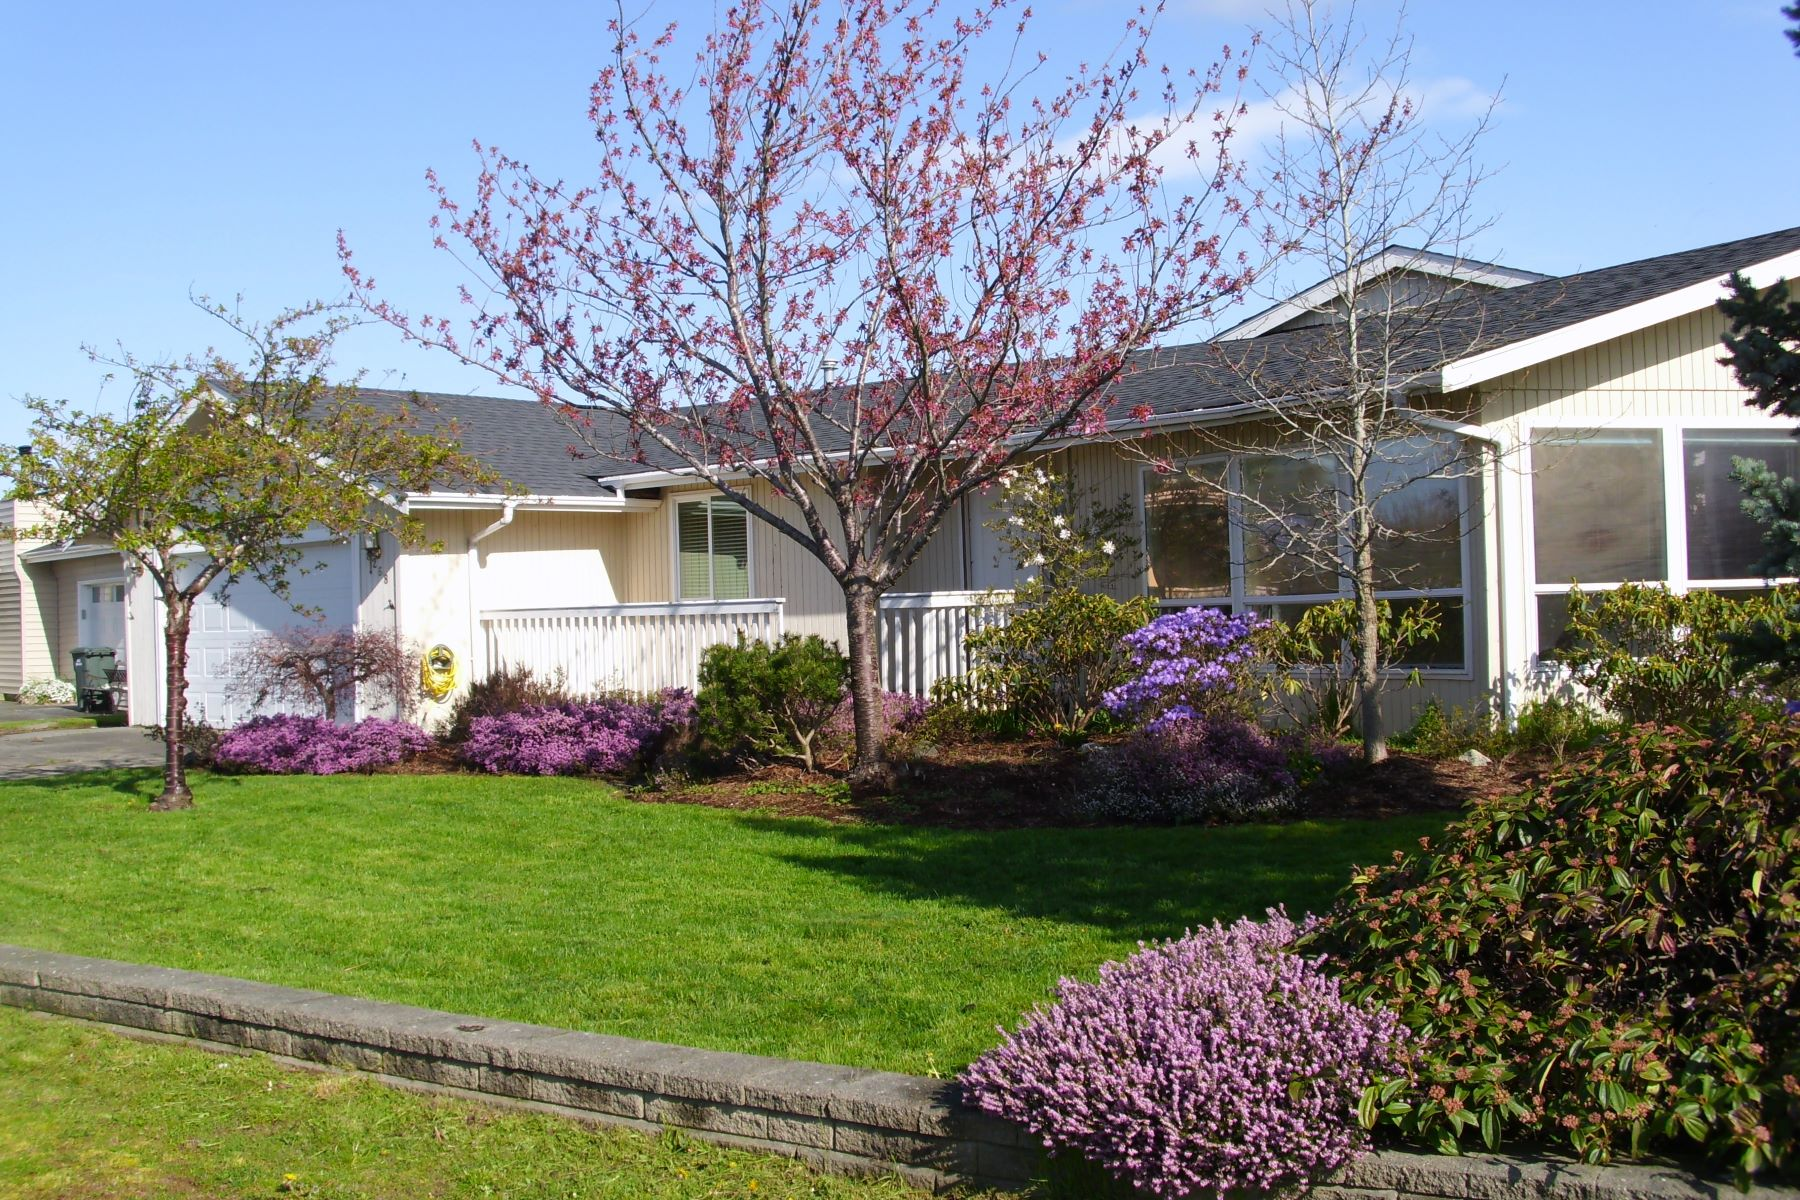 Casa Unifamiliar por un Venta en Birch Bay Waterfront 8268 Cowichan Rd Blaine, Washington 98230 Estados Unidos